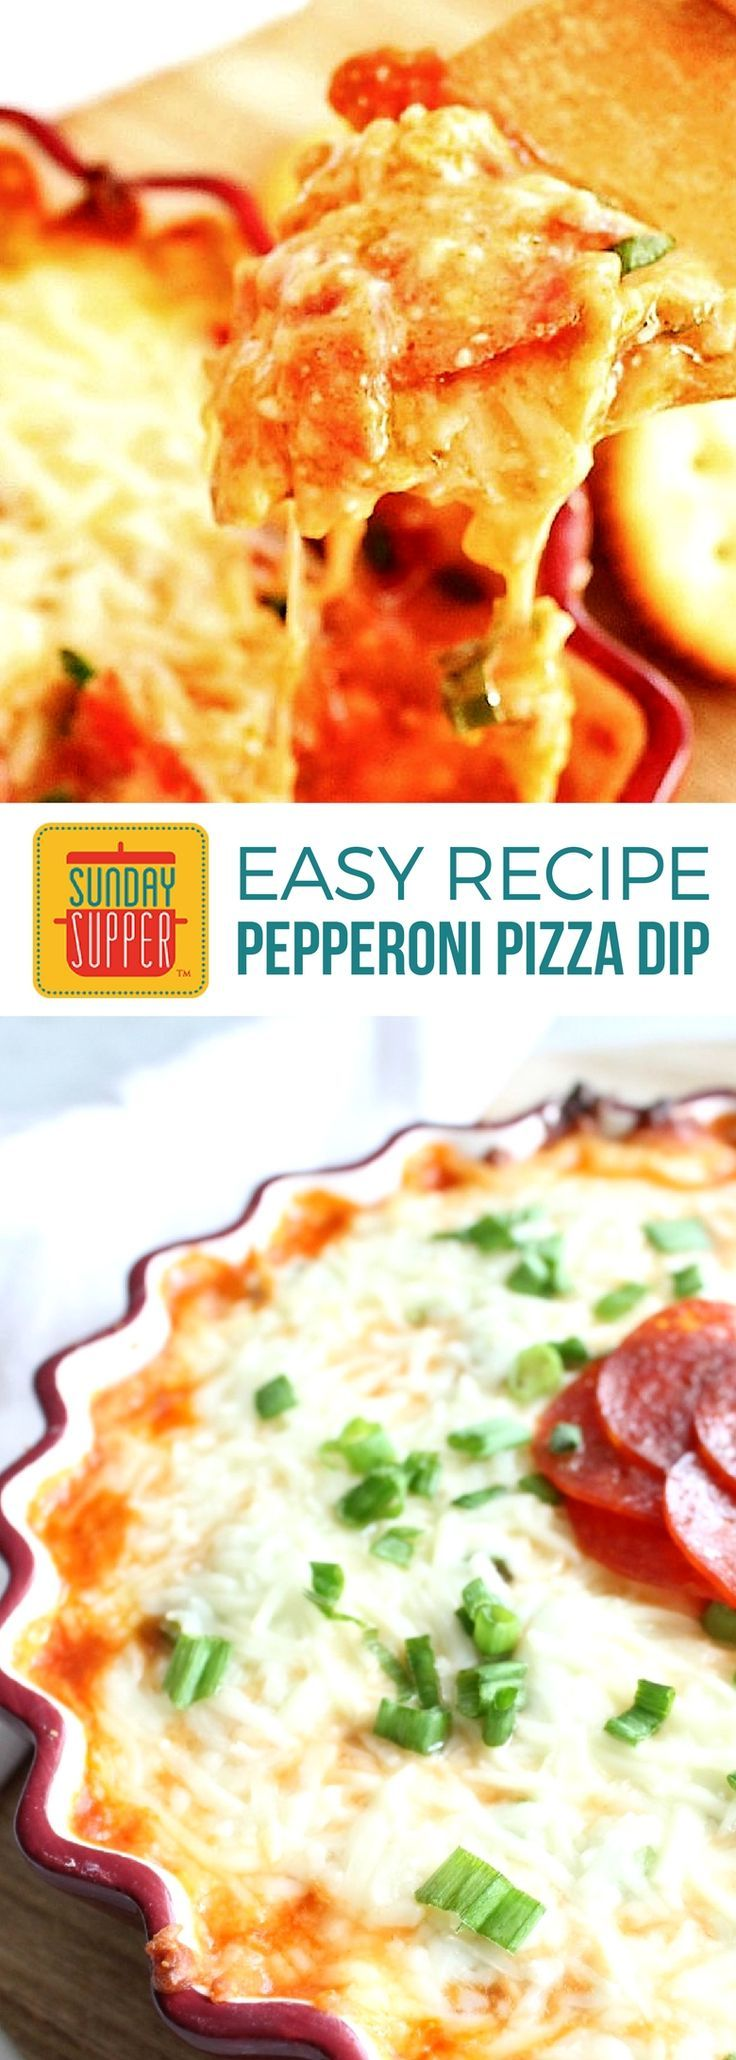 This ooey, gooey Easy Pepperoni Pizza Dip will satisfy any afternoon craving! A family favorite recipe & a top pick for Best After School Snacks! Our Easy Pepperoni Pizza Dip makes a great party appetizer, and is perfect for football food and sleepover food ideas too!